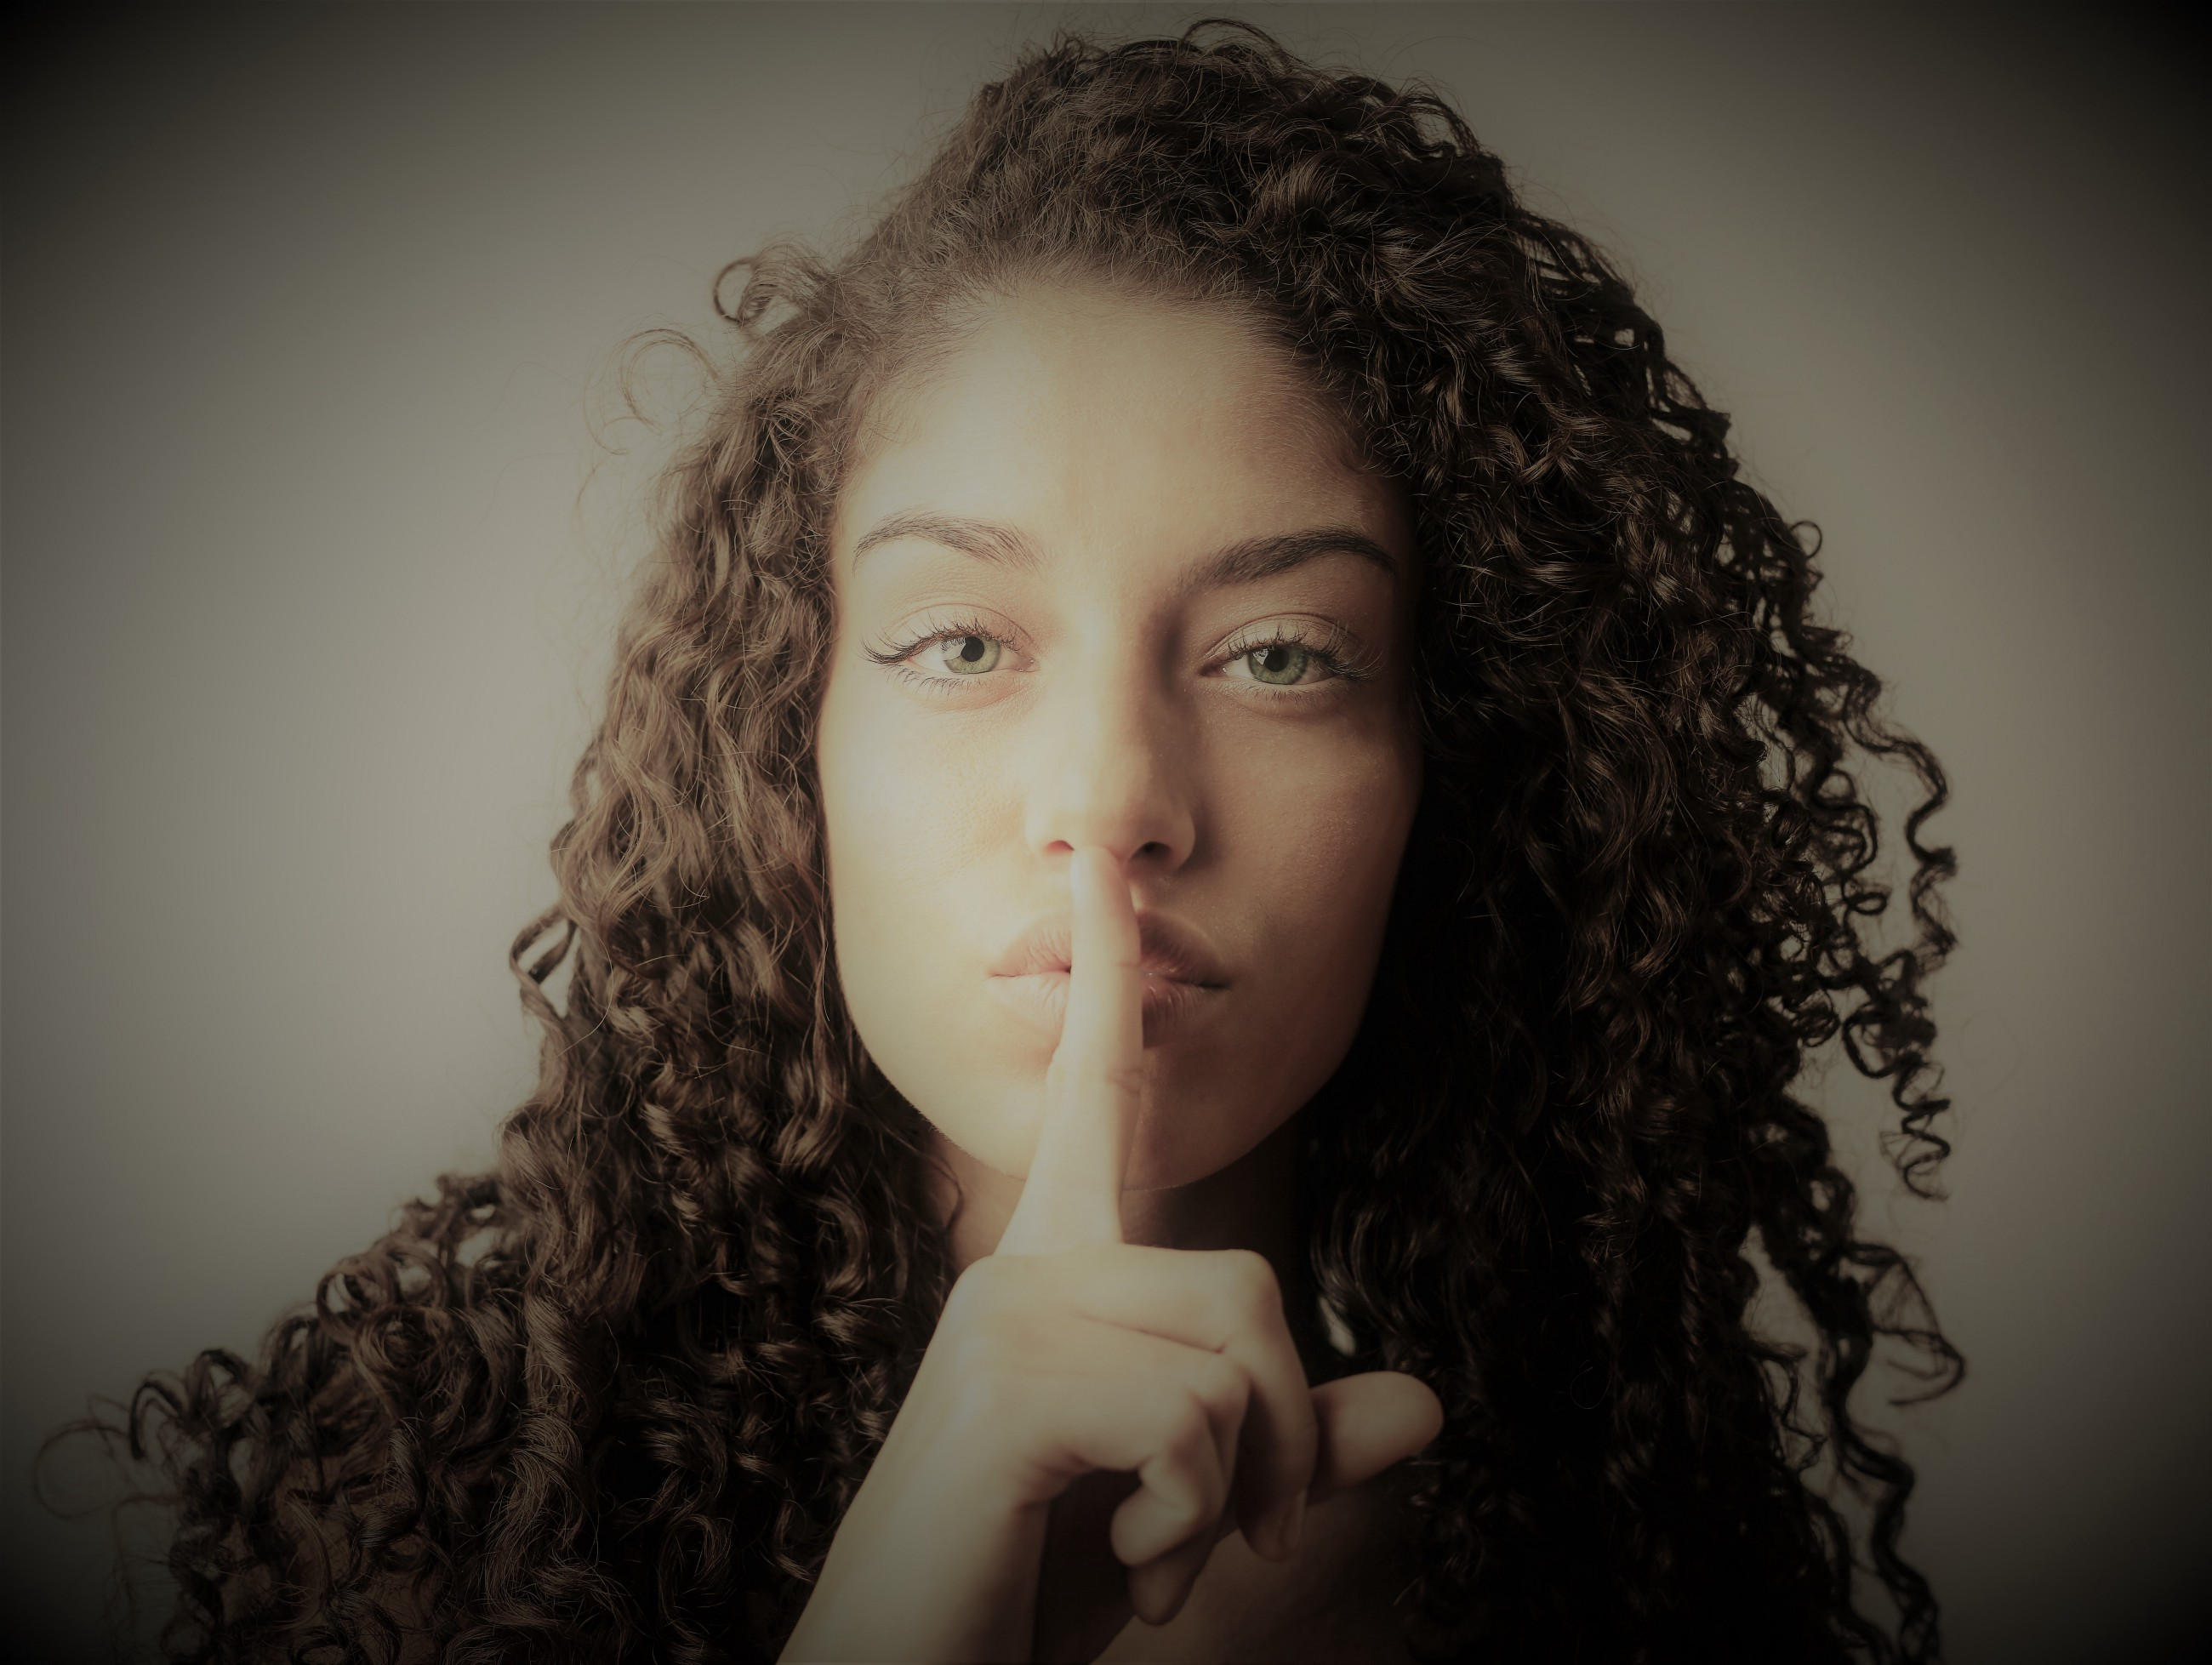 Four Reasons Why You Should Shut Up About Your Goals